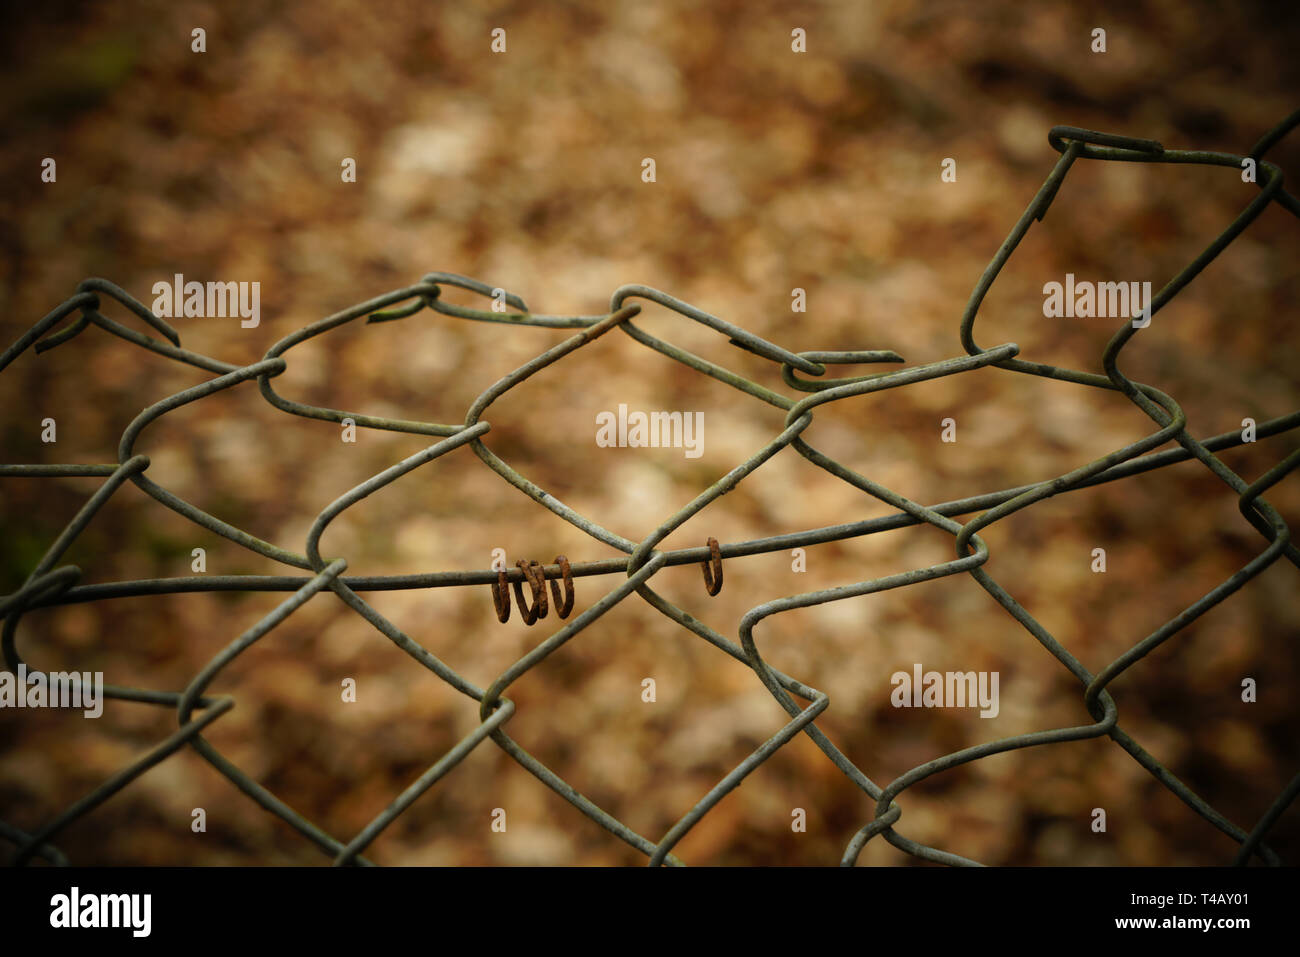 Wire fence with blurred background. - Stock Image